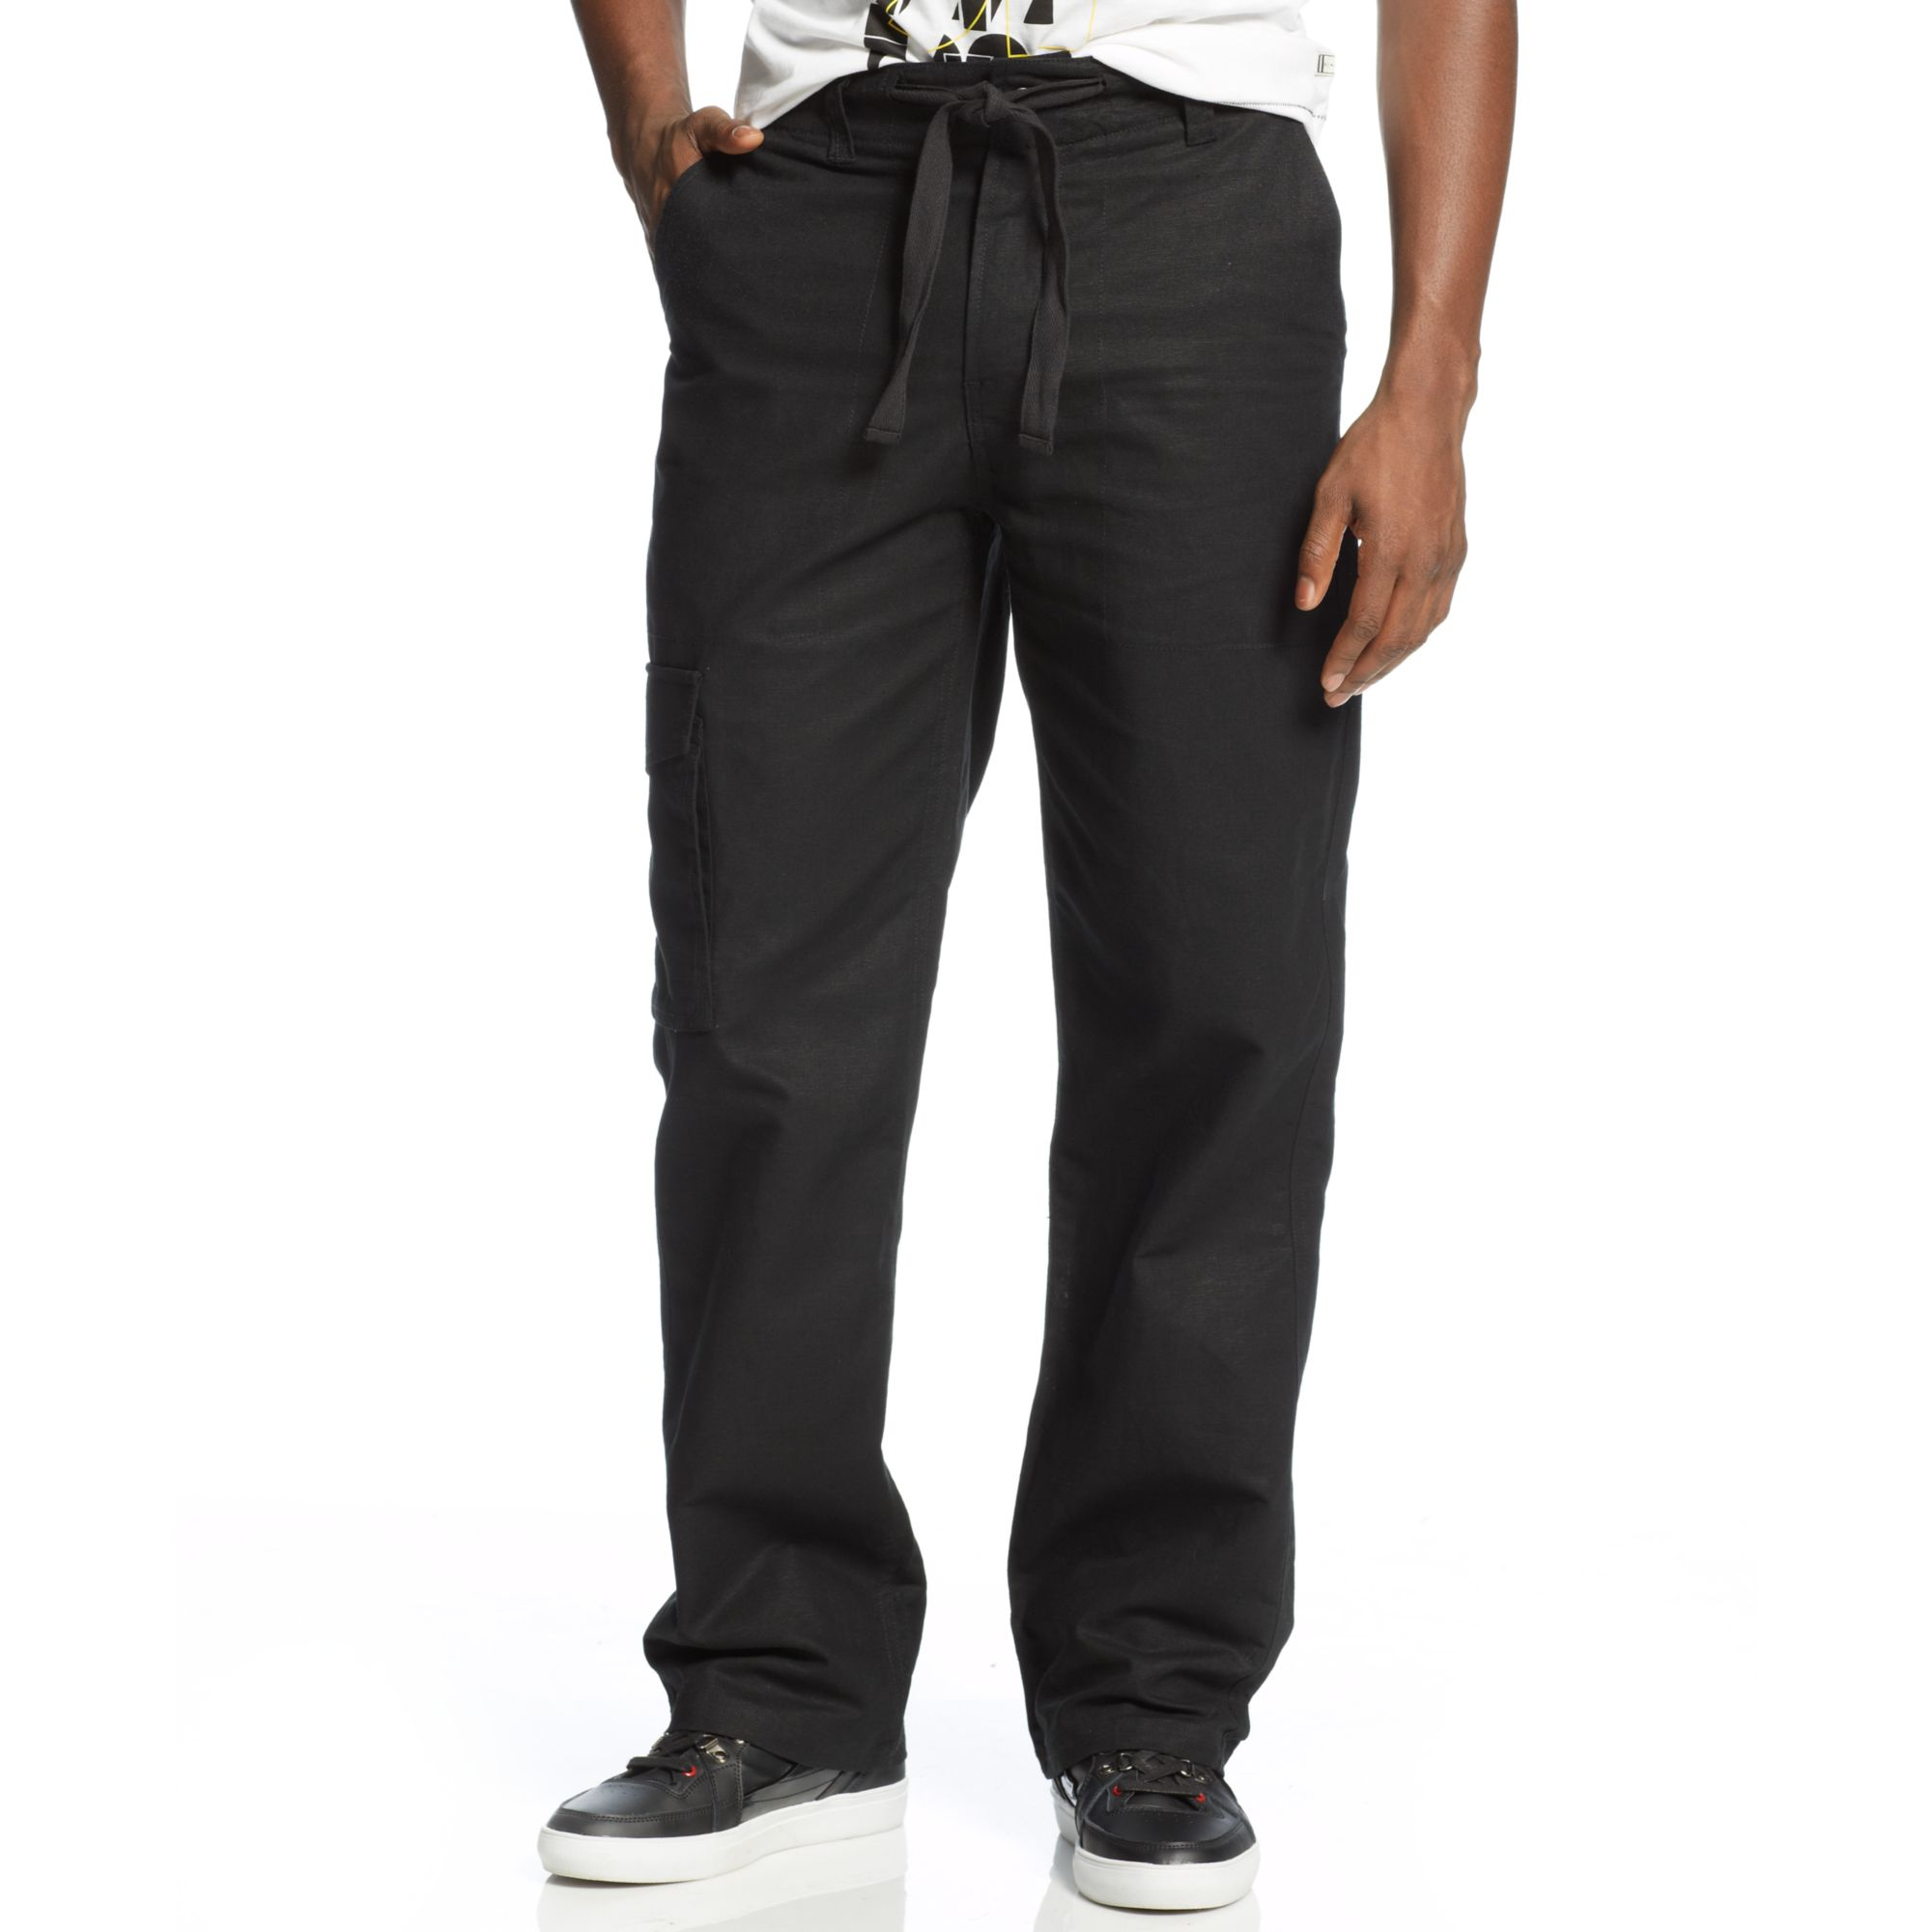 Sean John Clothing Big And Tall View Fullscreen Sean John